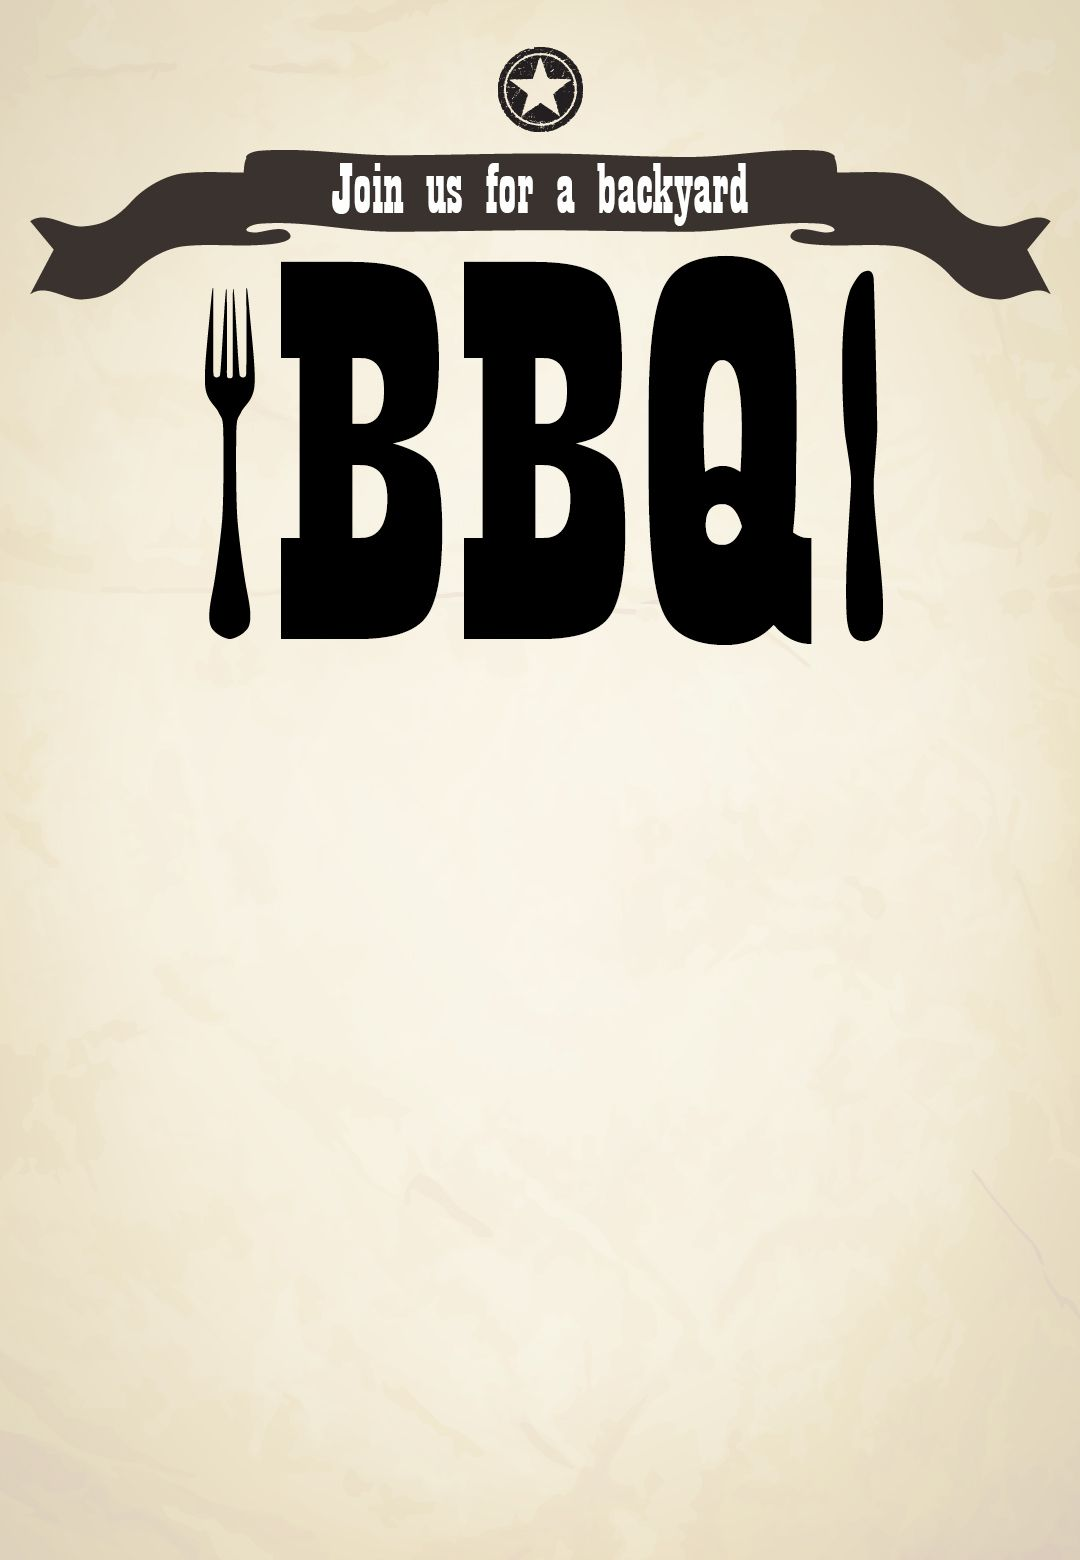 bbq  invitation free printable join us for a backyard bbq